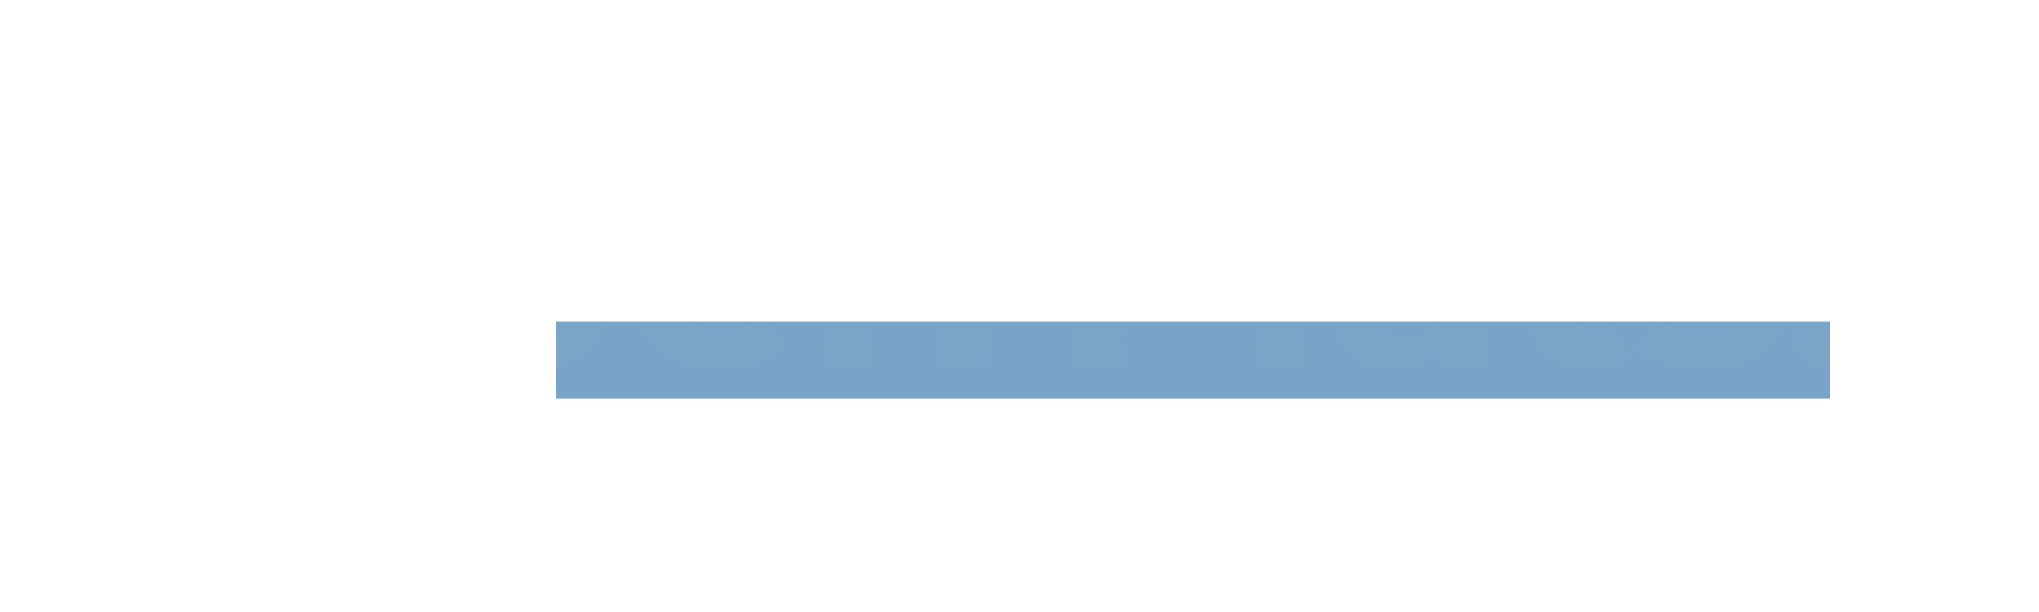 Openflats